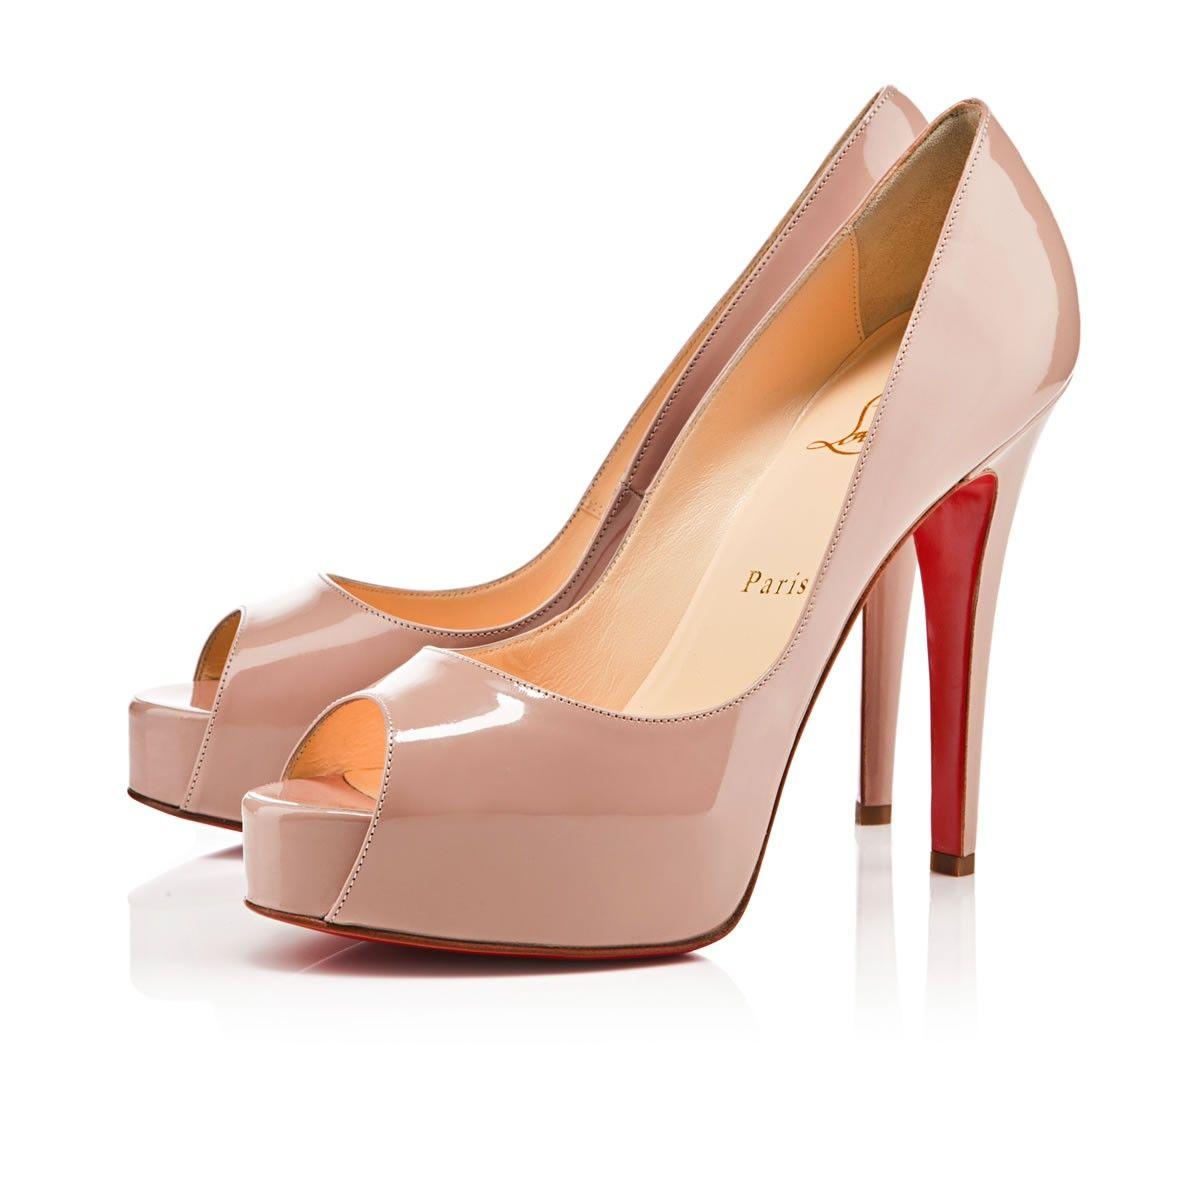 9c35d432811 Leisure In stock New Cheap Hyper Prive 120mm Peep Toe Pumps Nude Red Sole  Shoes Good-feeling Christian Louboutin Special Offers